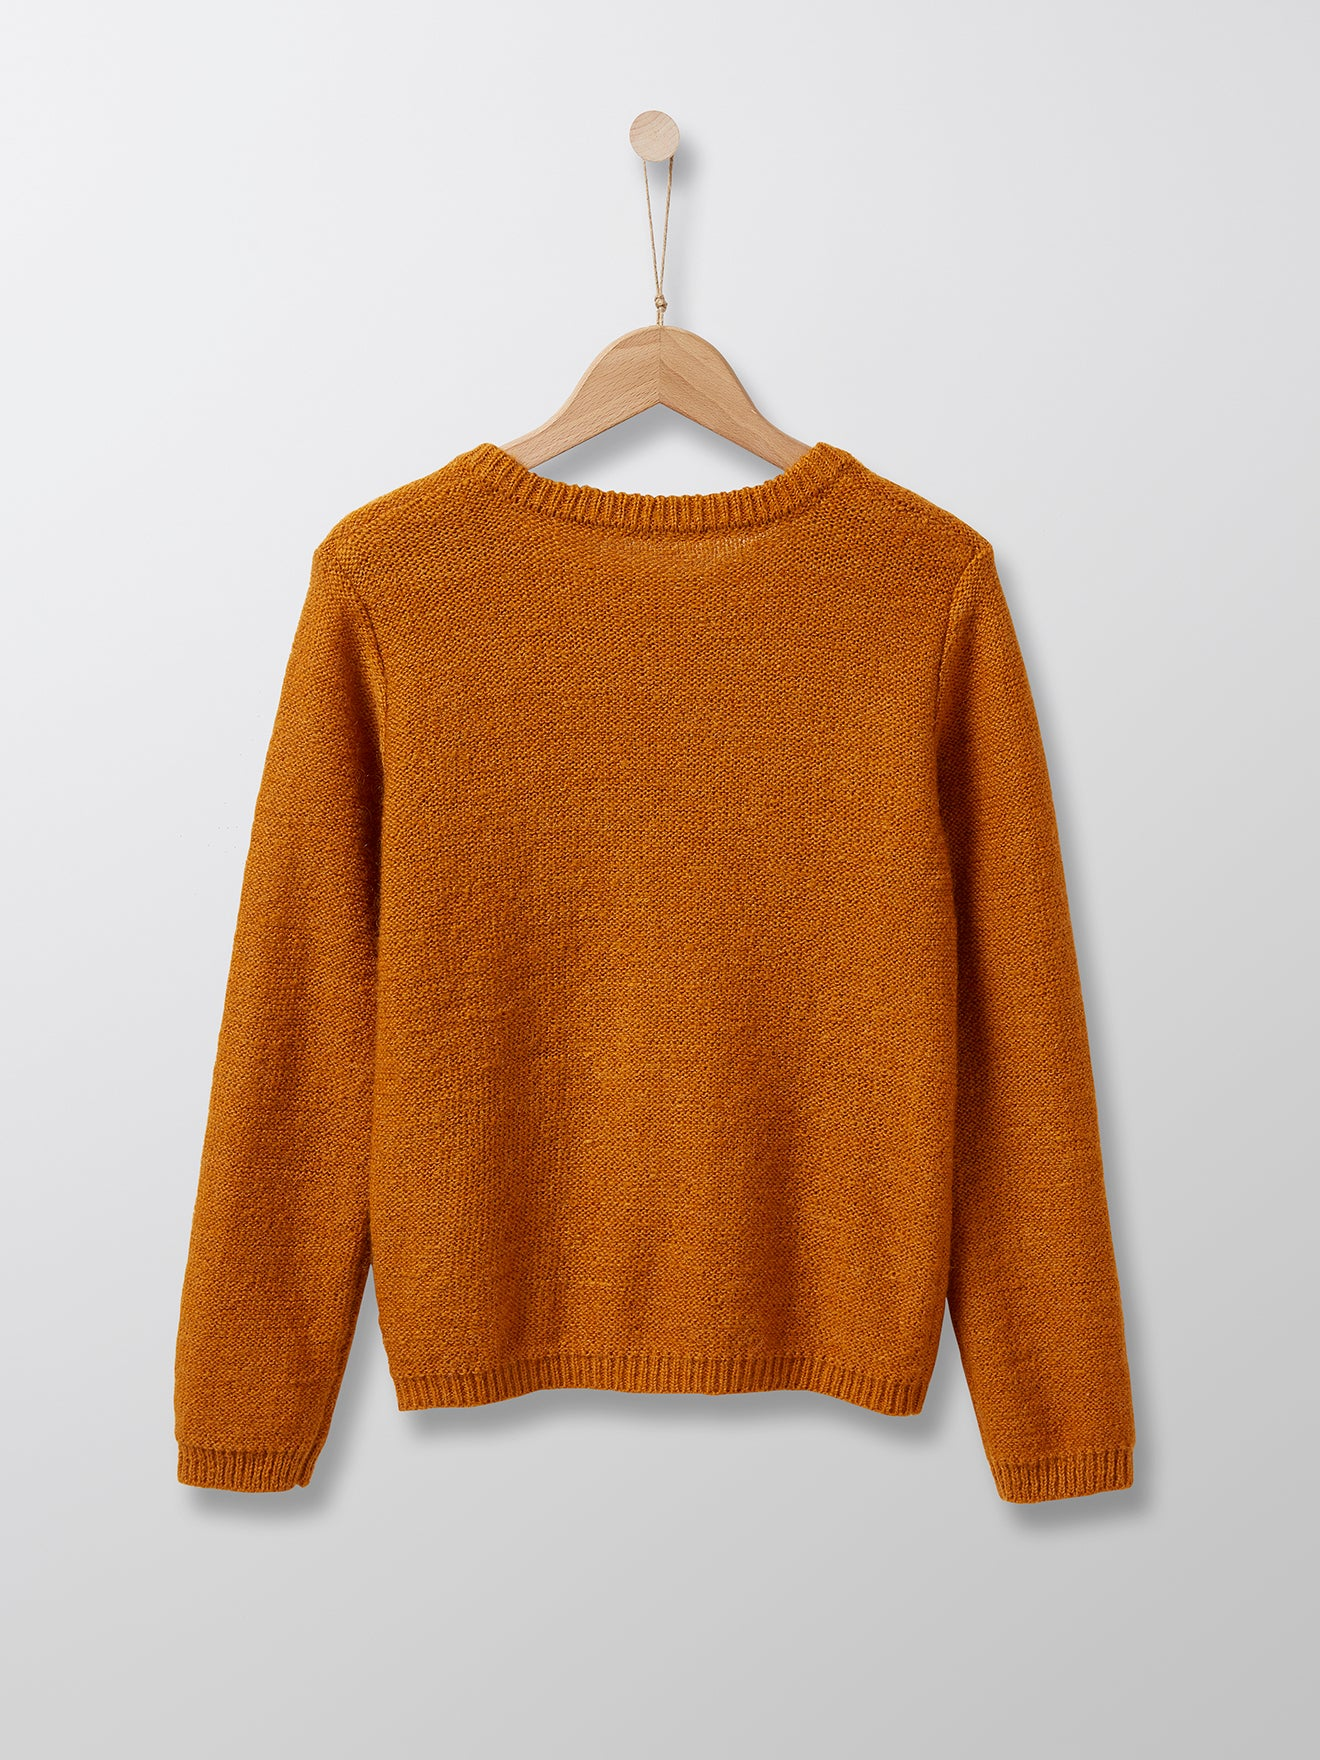 Cyrillus Paris | Knit Sweater | Mustard | 3Y, 4Y, 6Y